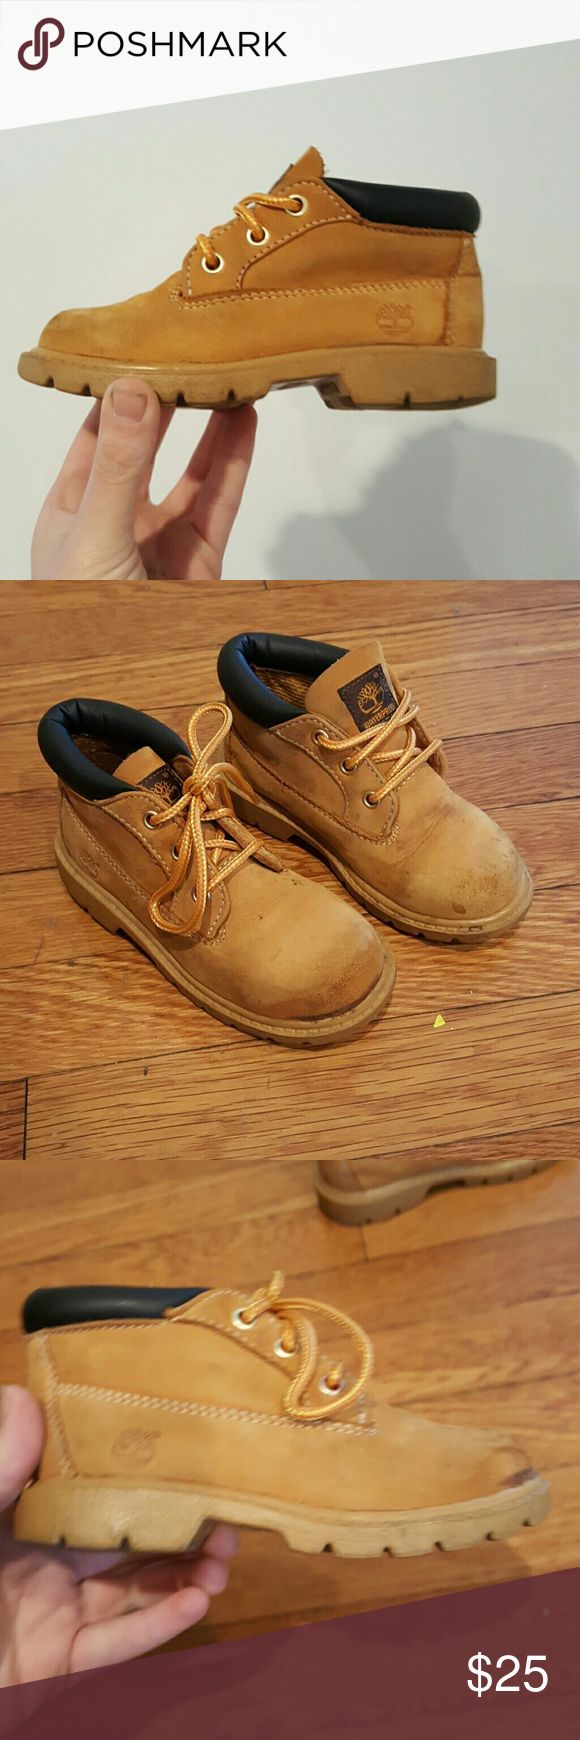 TIMBERLAND  BOYS HIKING BOOTS SIZE 9 TIMBERLAND TODDLER SIZE 9 GREAT SHAPE SMALL STAIN IN FRONT NOT NOTICEABLE NOT ALOT OF WEAR ADORABLE CLASSIC HIKING BOOTS WATERPROOF WHEAT NUBUCK PREMIUM BOOT Timberland Shoes Rain & Snow Boots